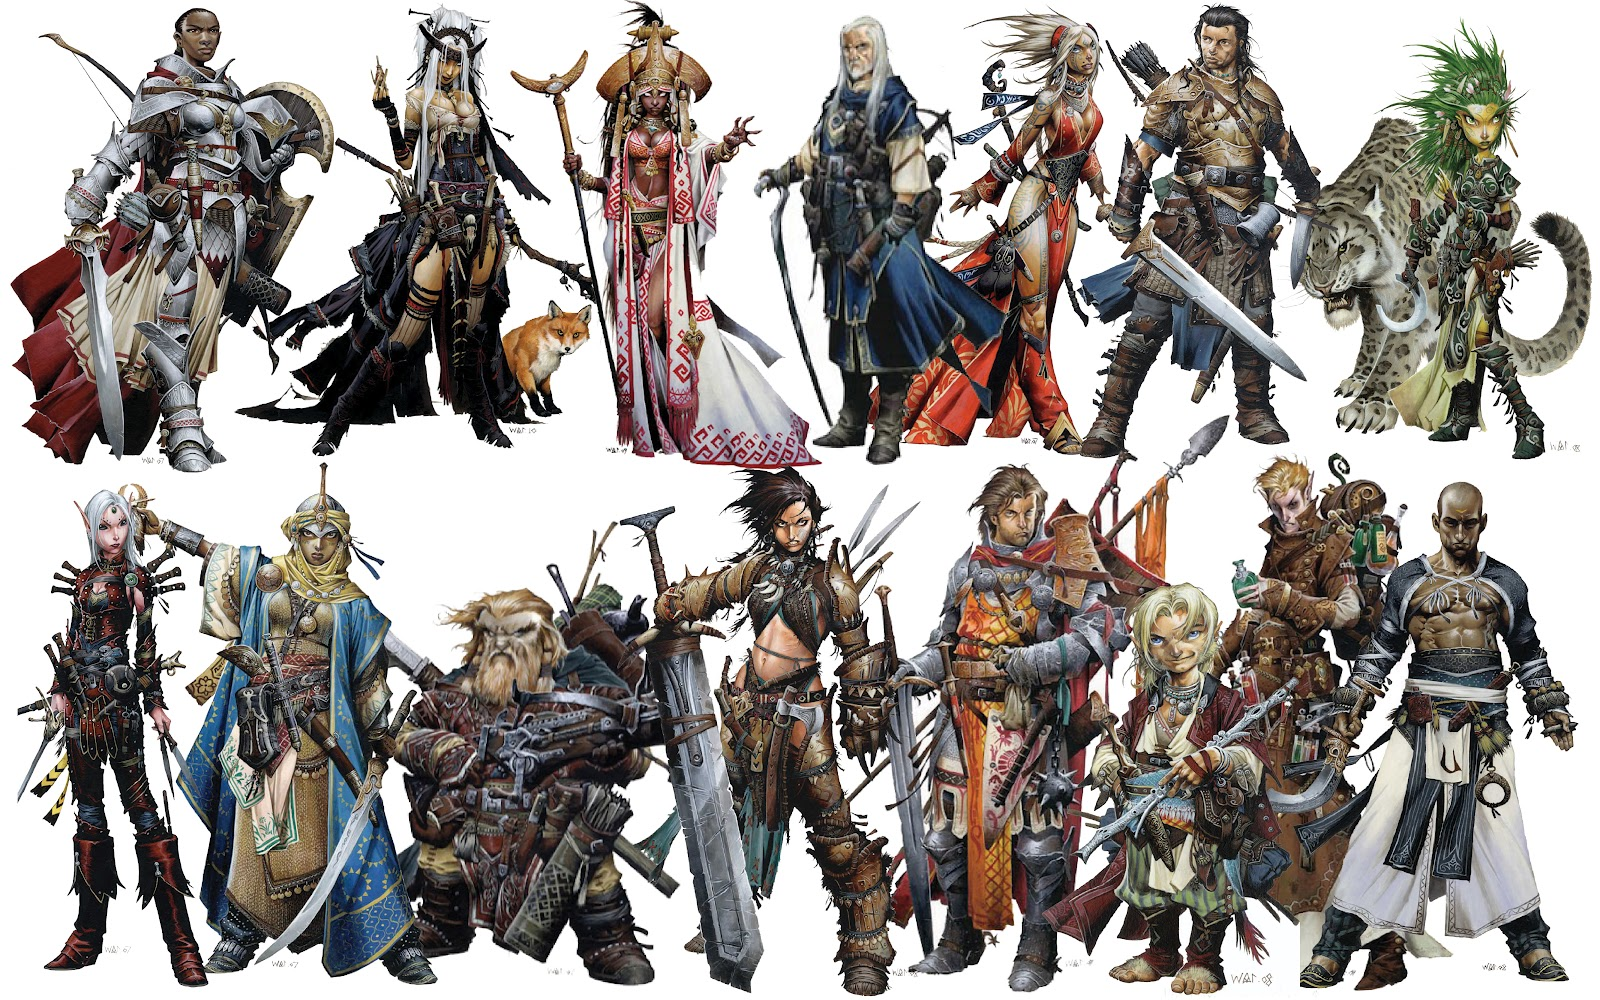 These are from Pathfinder, which is basically D&D except it's exactly the same as D&D for all intents and purposes.